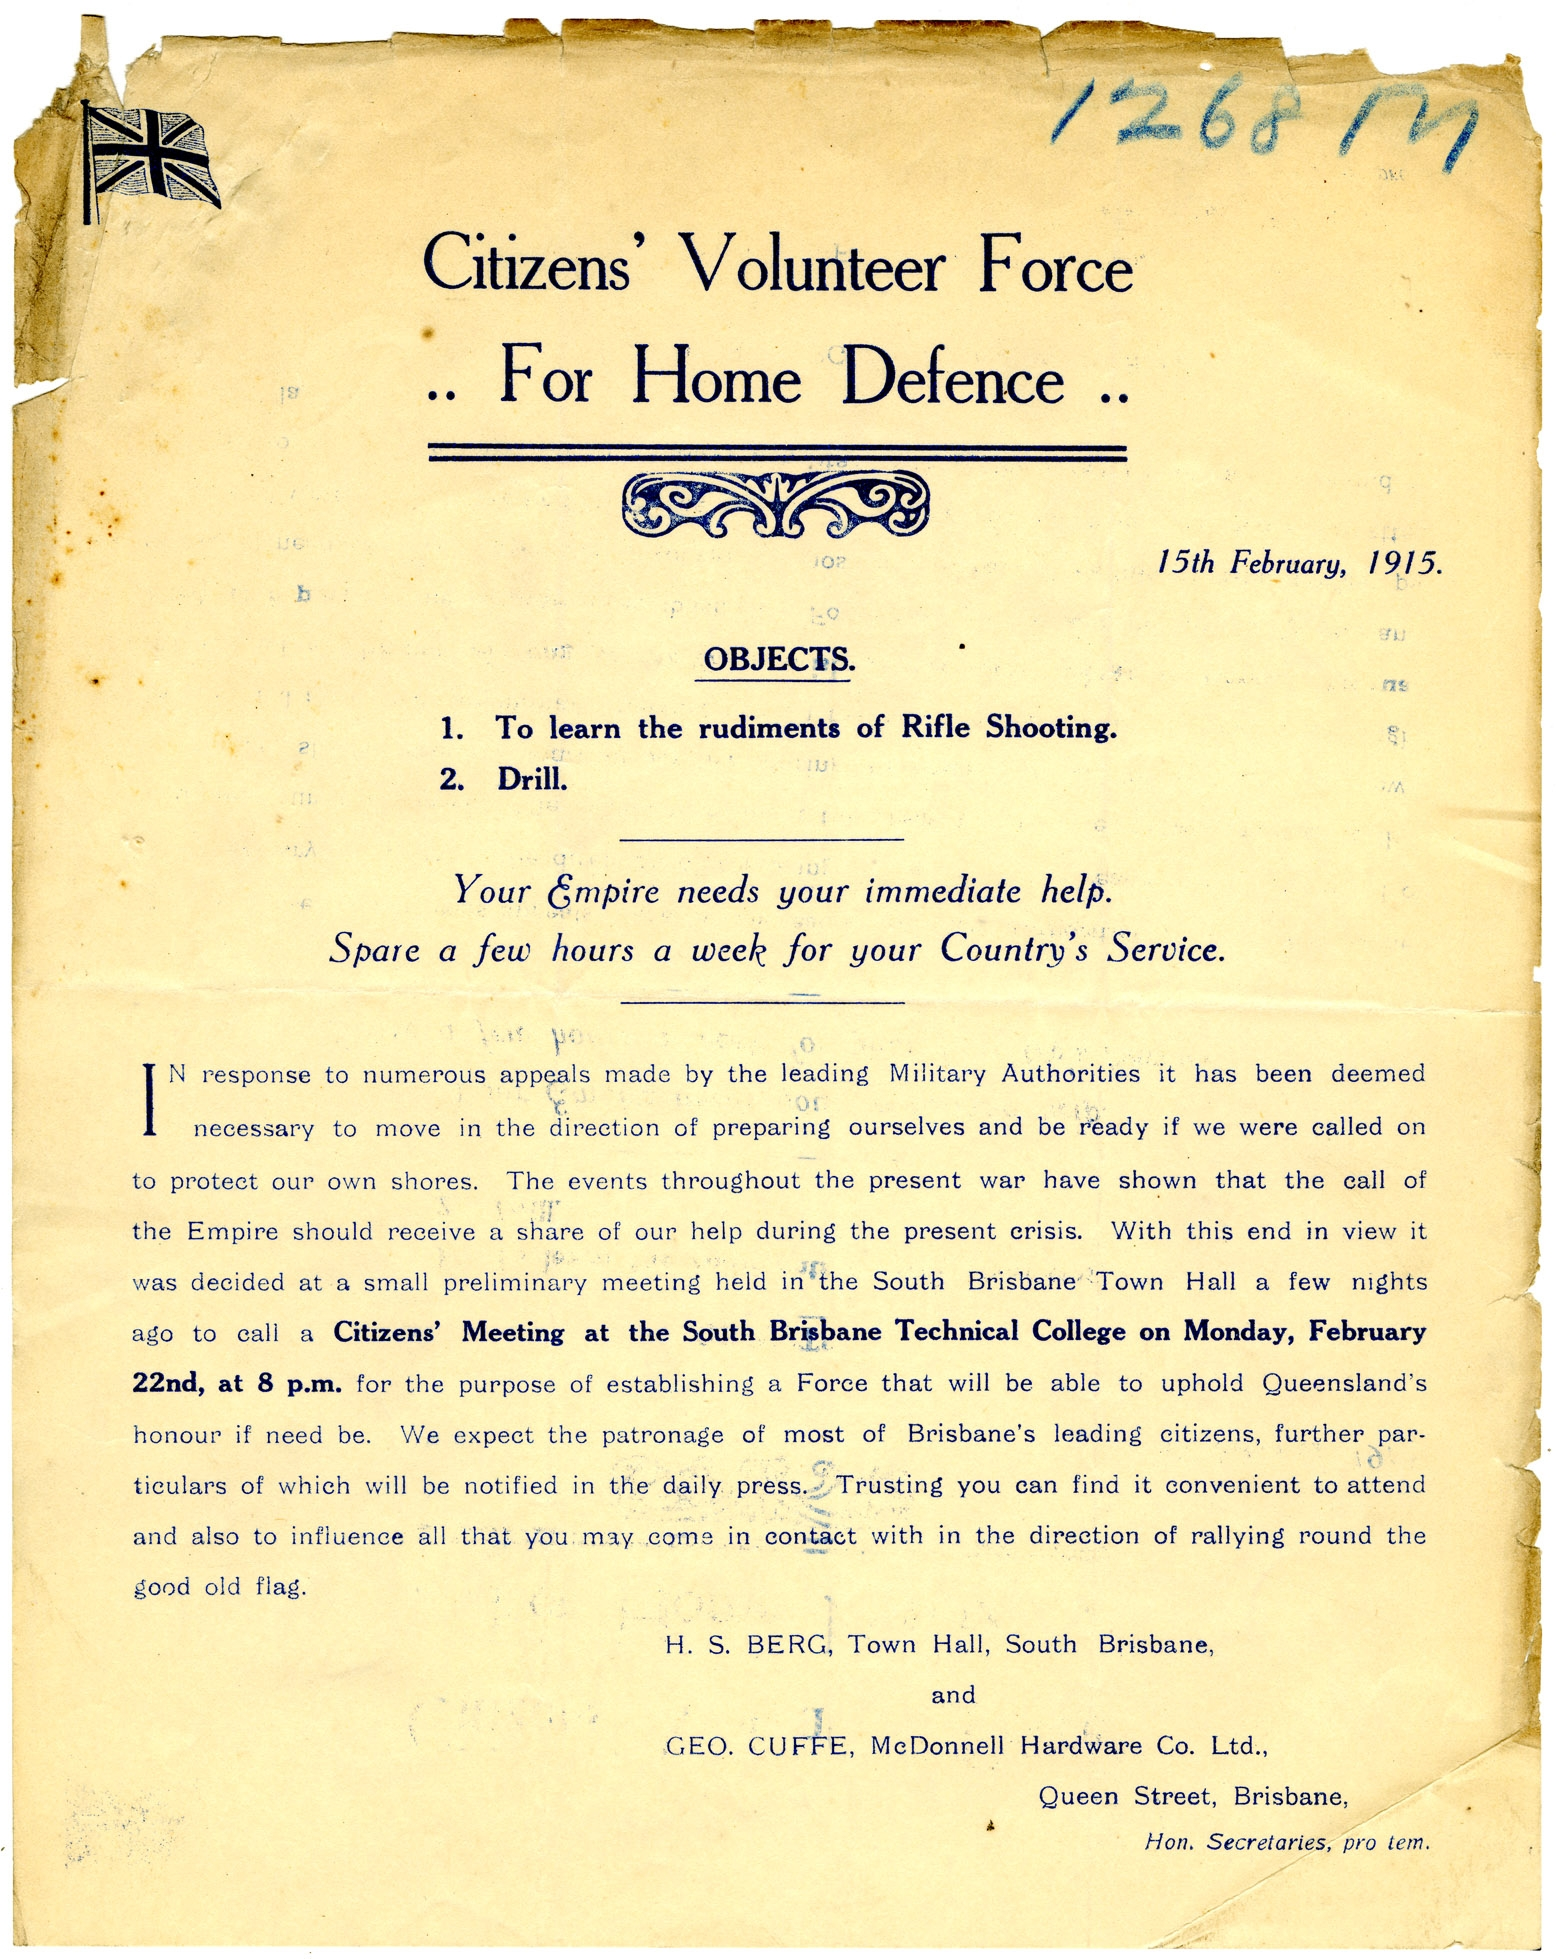 Flyer outlining the objectives of the Citizens' Volunteer force for Home Defence, 15 February 1915